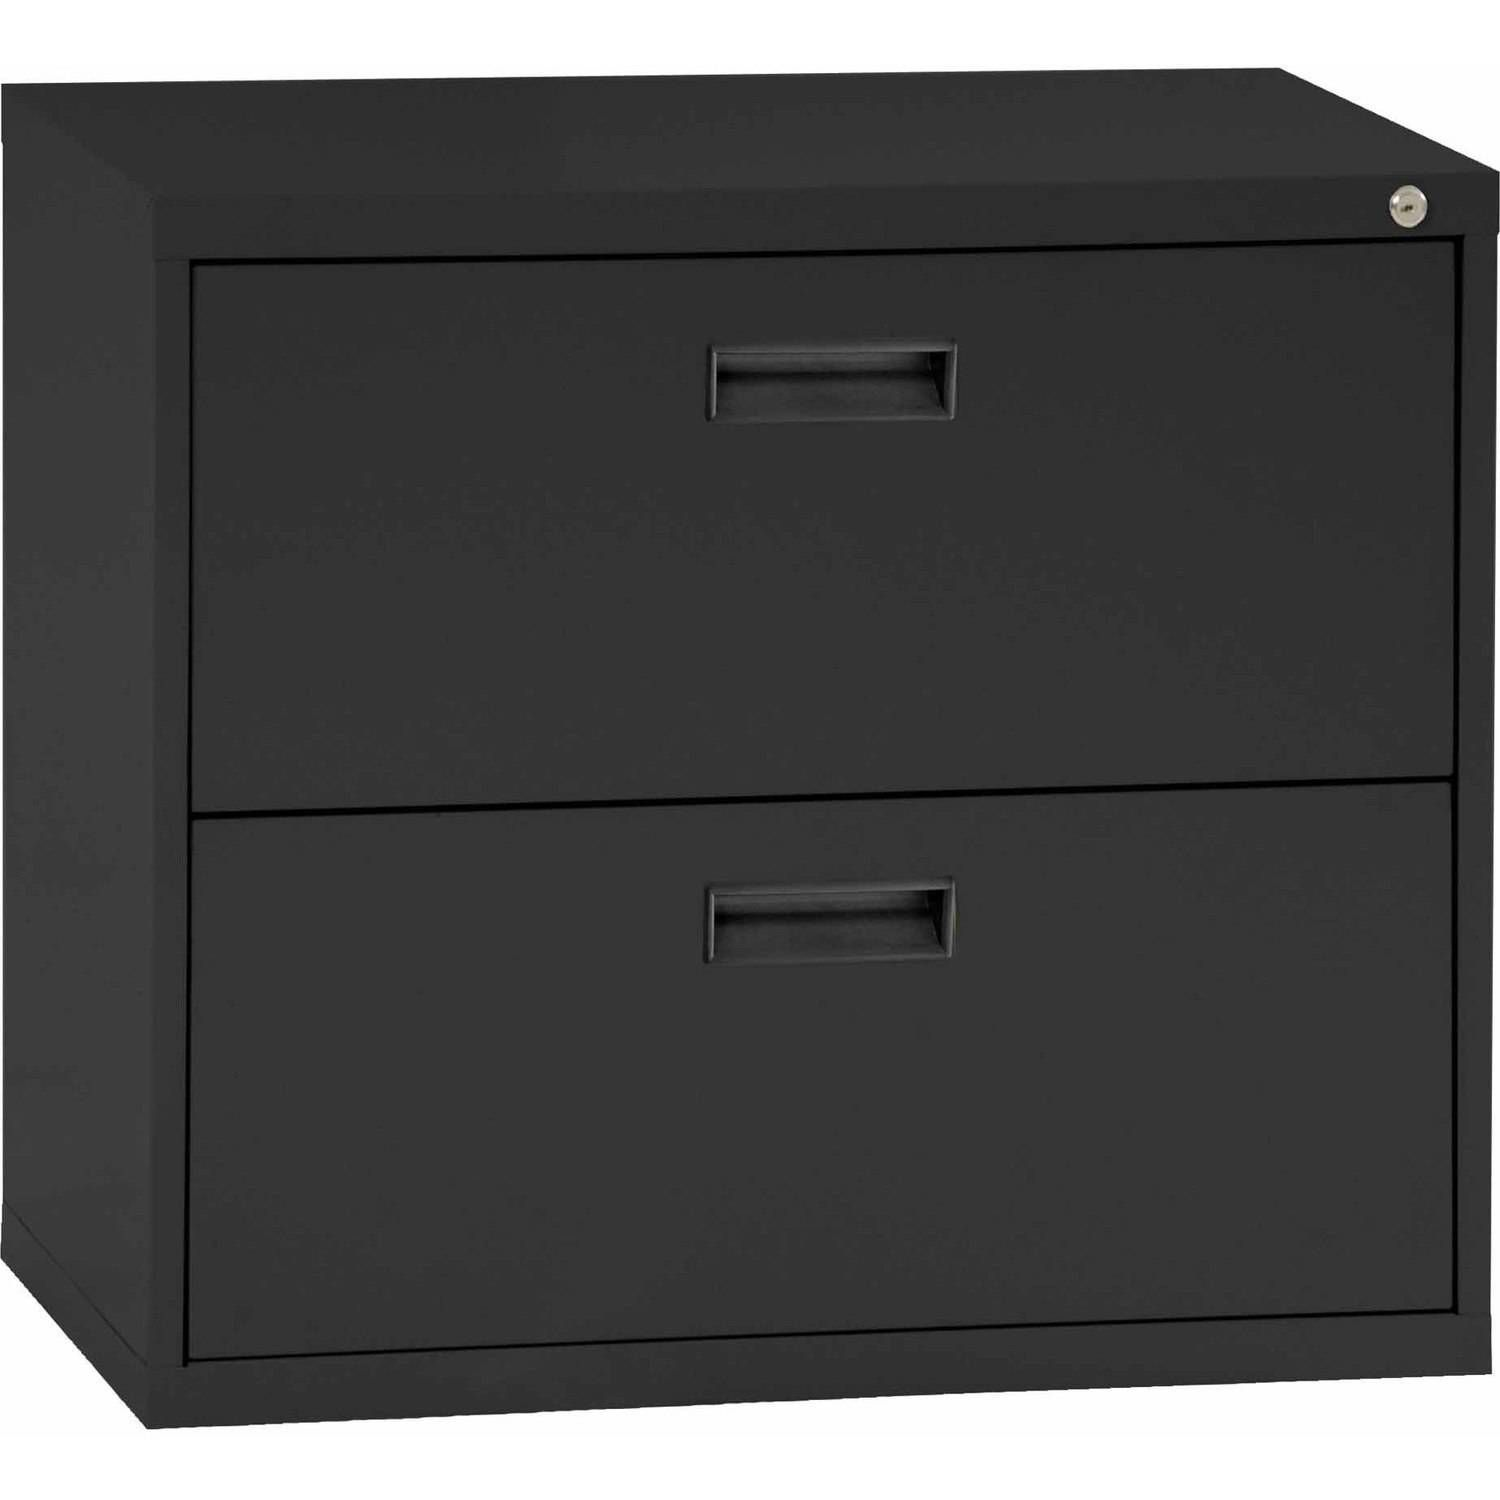 filing maple silver p drawer cabinet handles two with high storefront deluxe